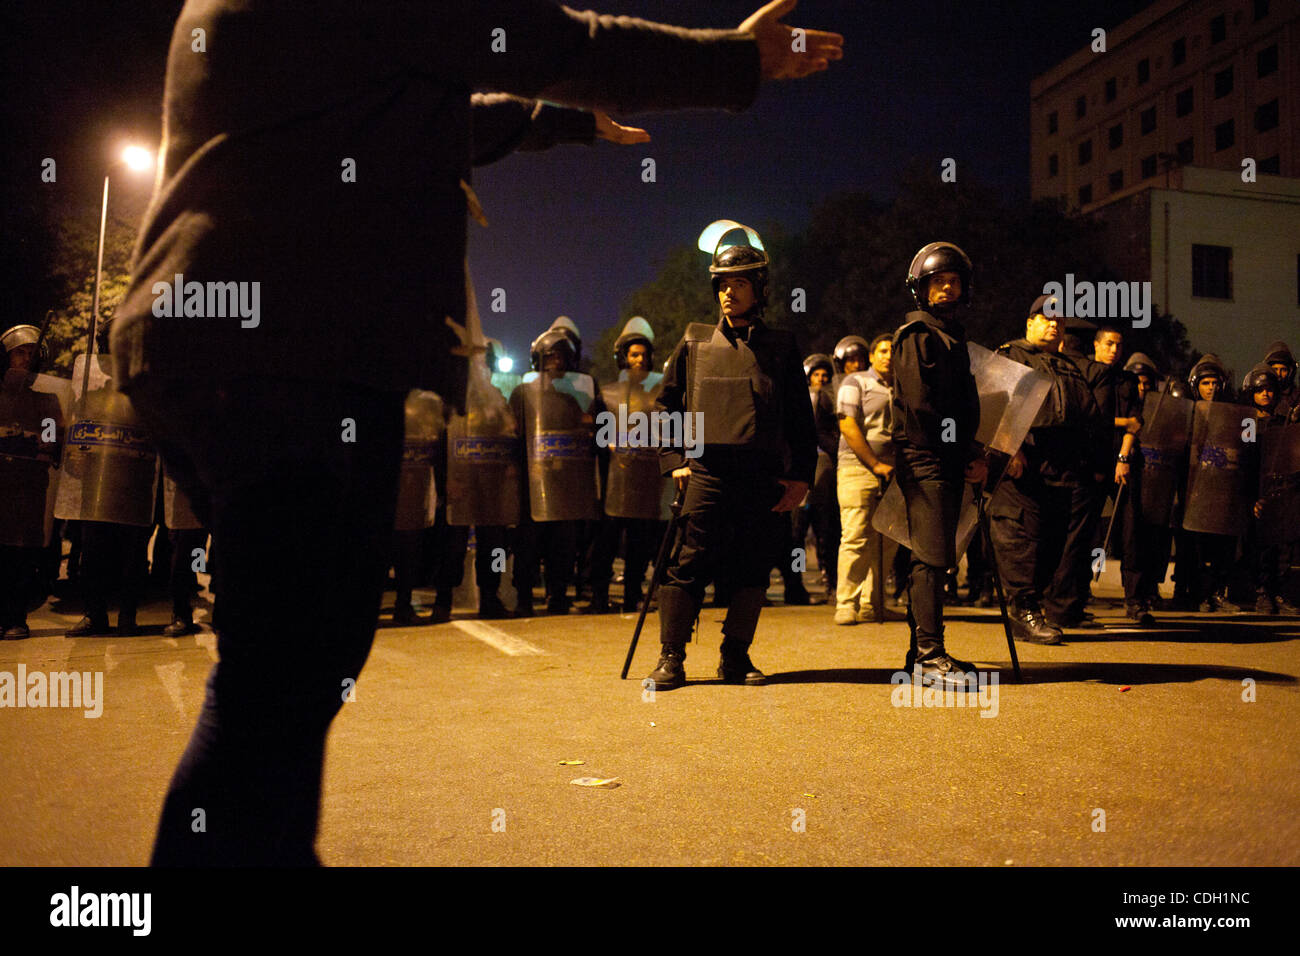 Jan. 25, 2011 - Cairo, Cairo, Egypt - 20110125 - Cairo, Egypt - ..Swirls of protests around Cairo came together - Stock Image